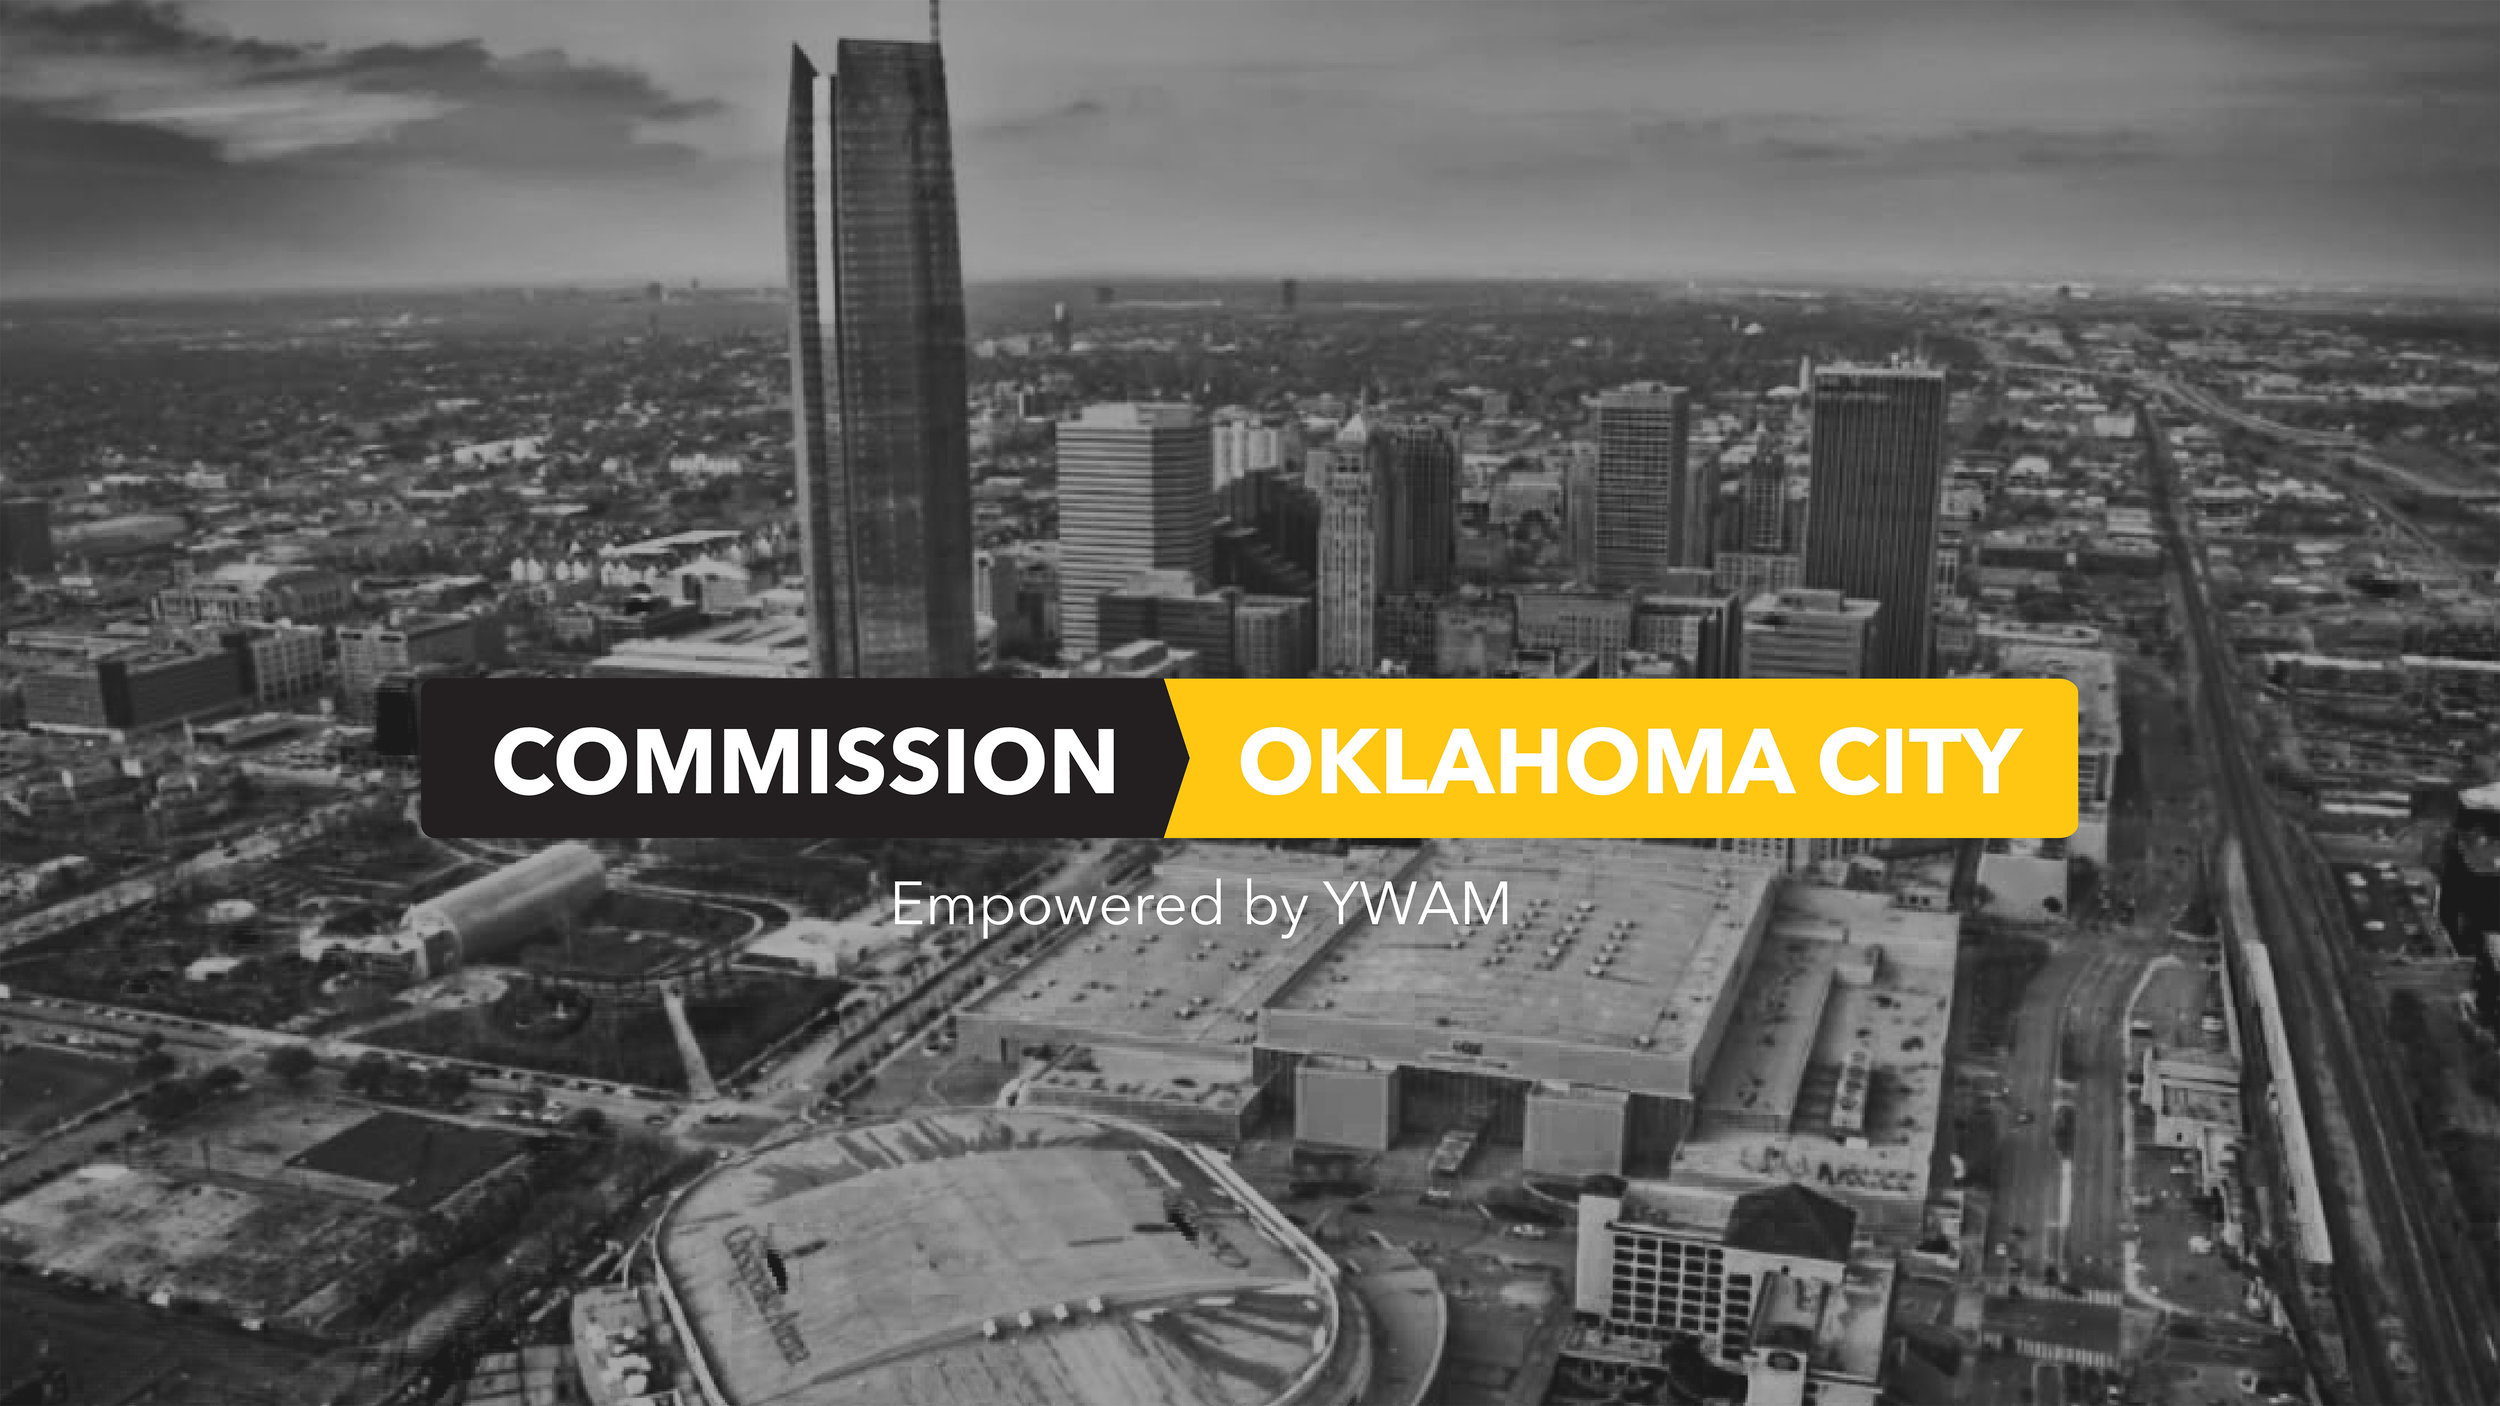 Commission the City Conference:   (March 29-30)   We want to see our neighborhoods and the nations transformed by the love of Jesus. We're ready to take responsibility and adopt our communities. Heroes are those who practically walk out the love of Jesus. Receive practical training and tools to impact the lost. Learn simple approaches to gather people, share the gospel and disciple new followers of Jesus.